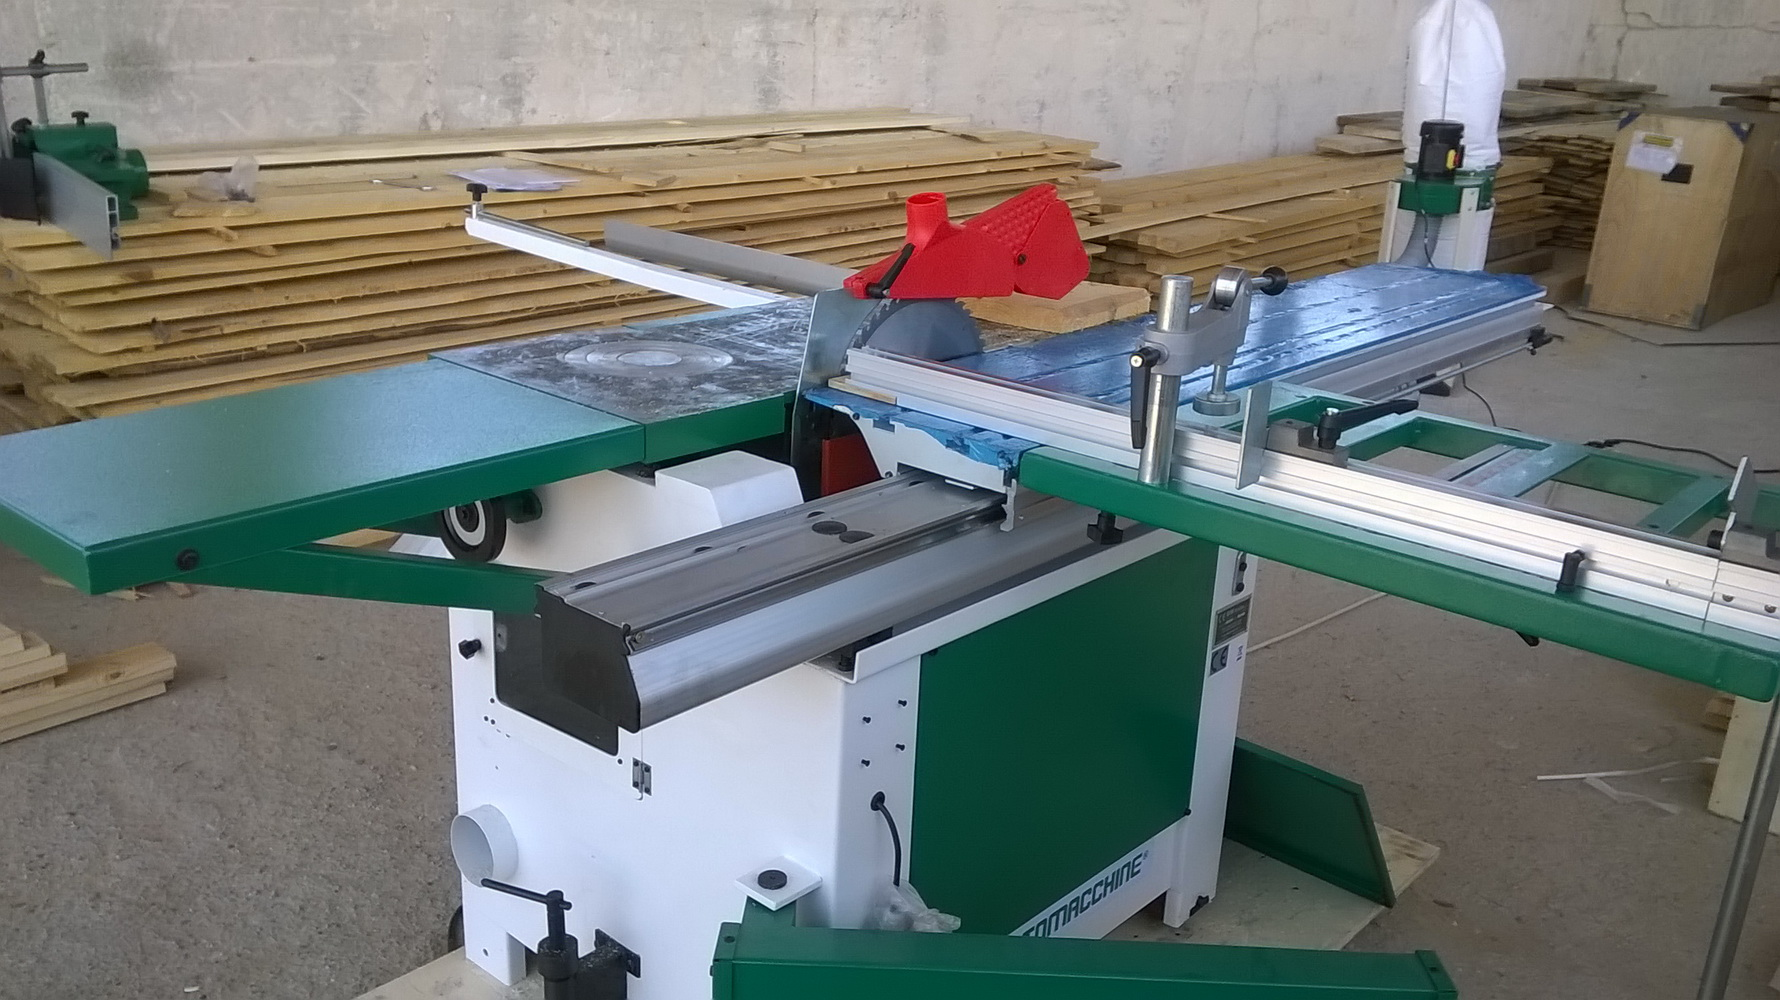 Masina Combinata lemn circular cu Freza damato machine TSI Super 1600 2